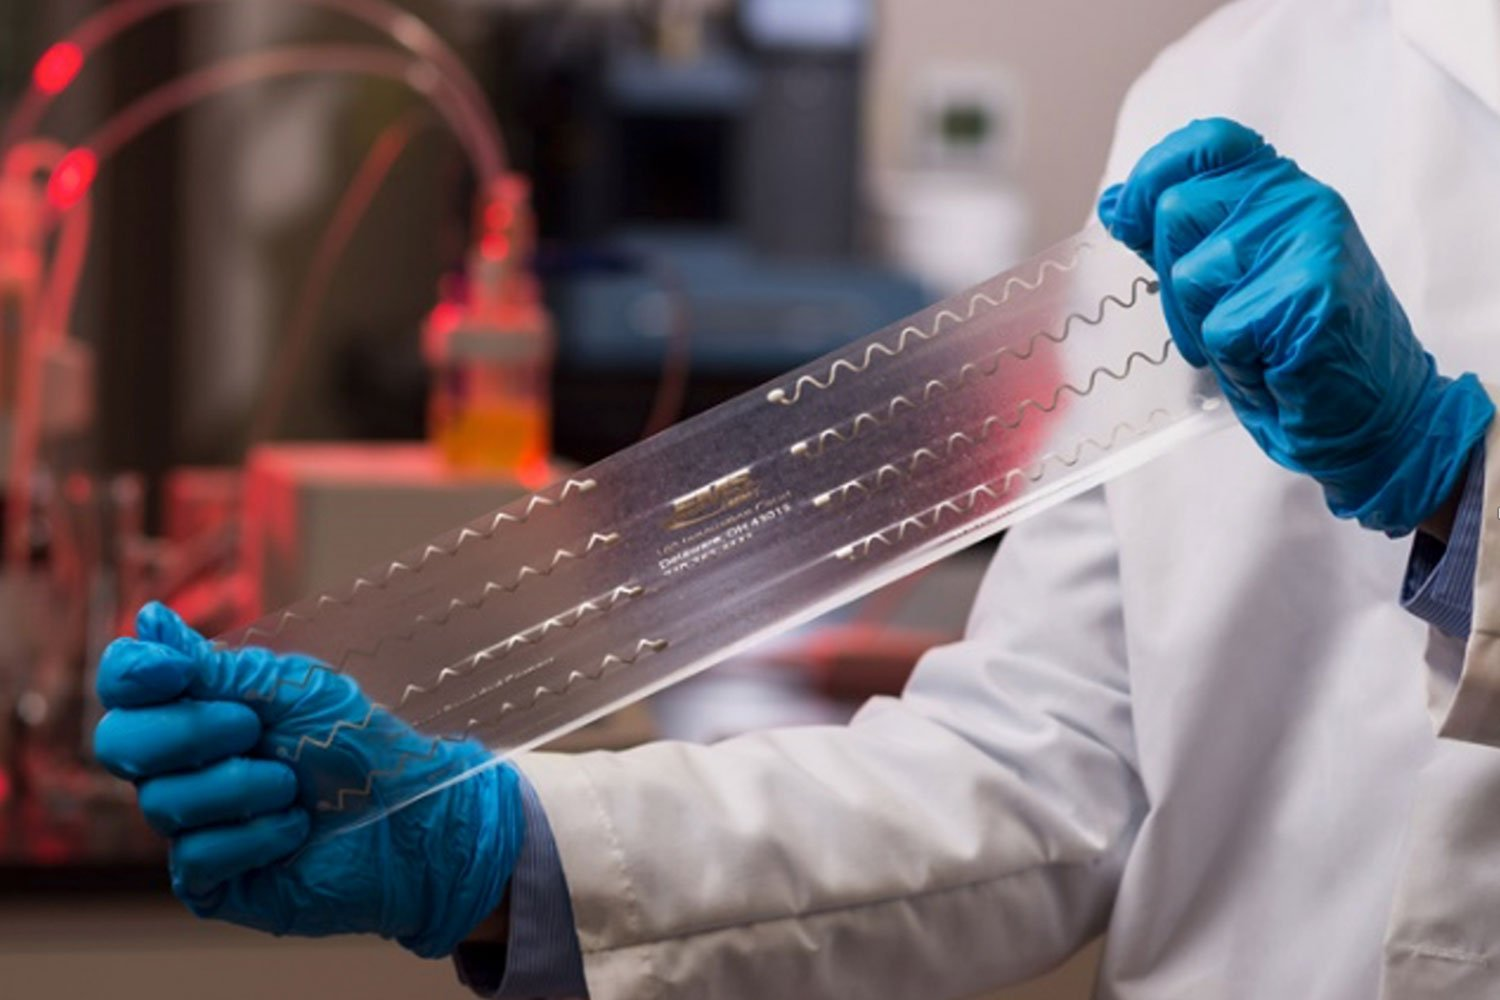 close-up-of-flexible-form-factor-printed-electronics